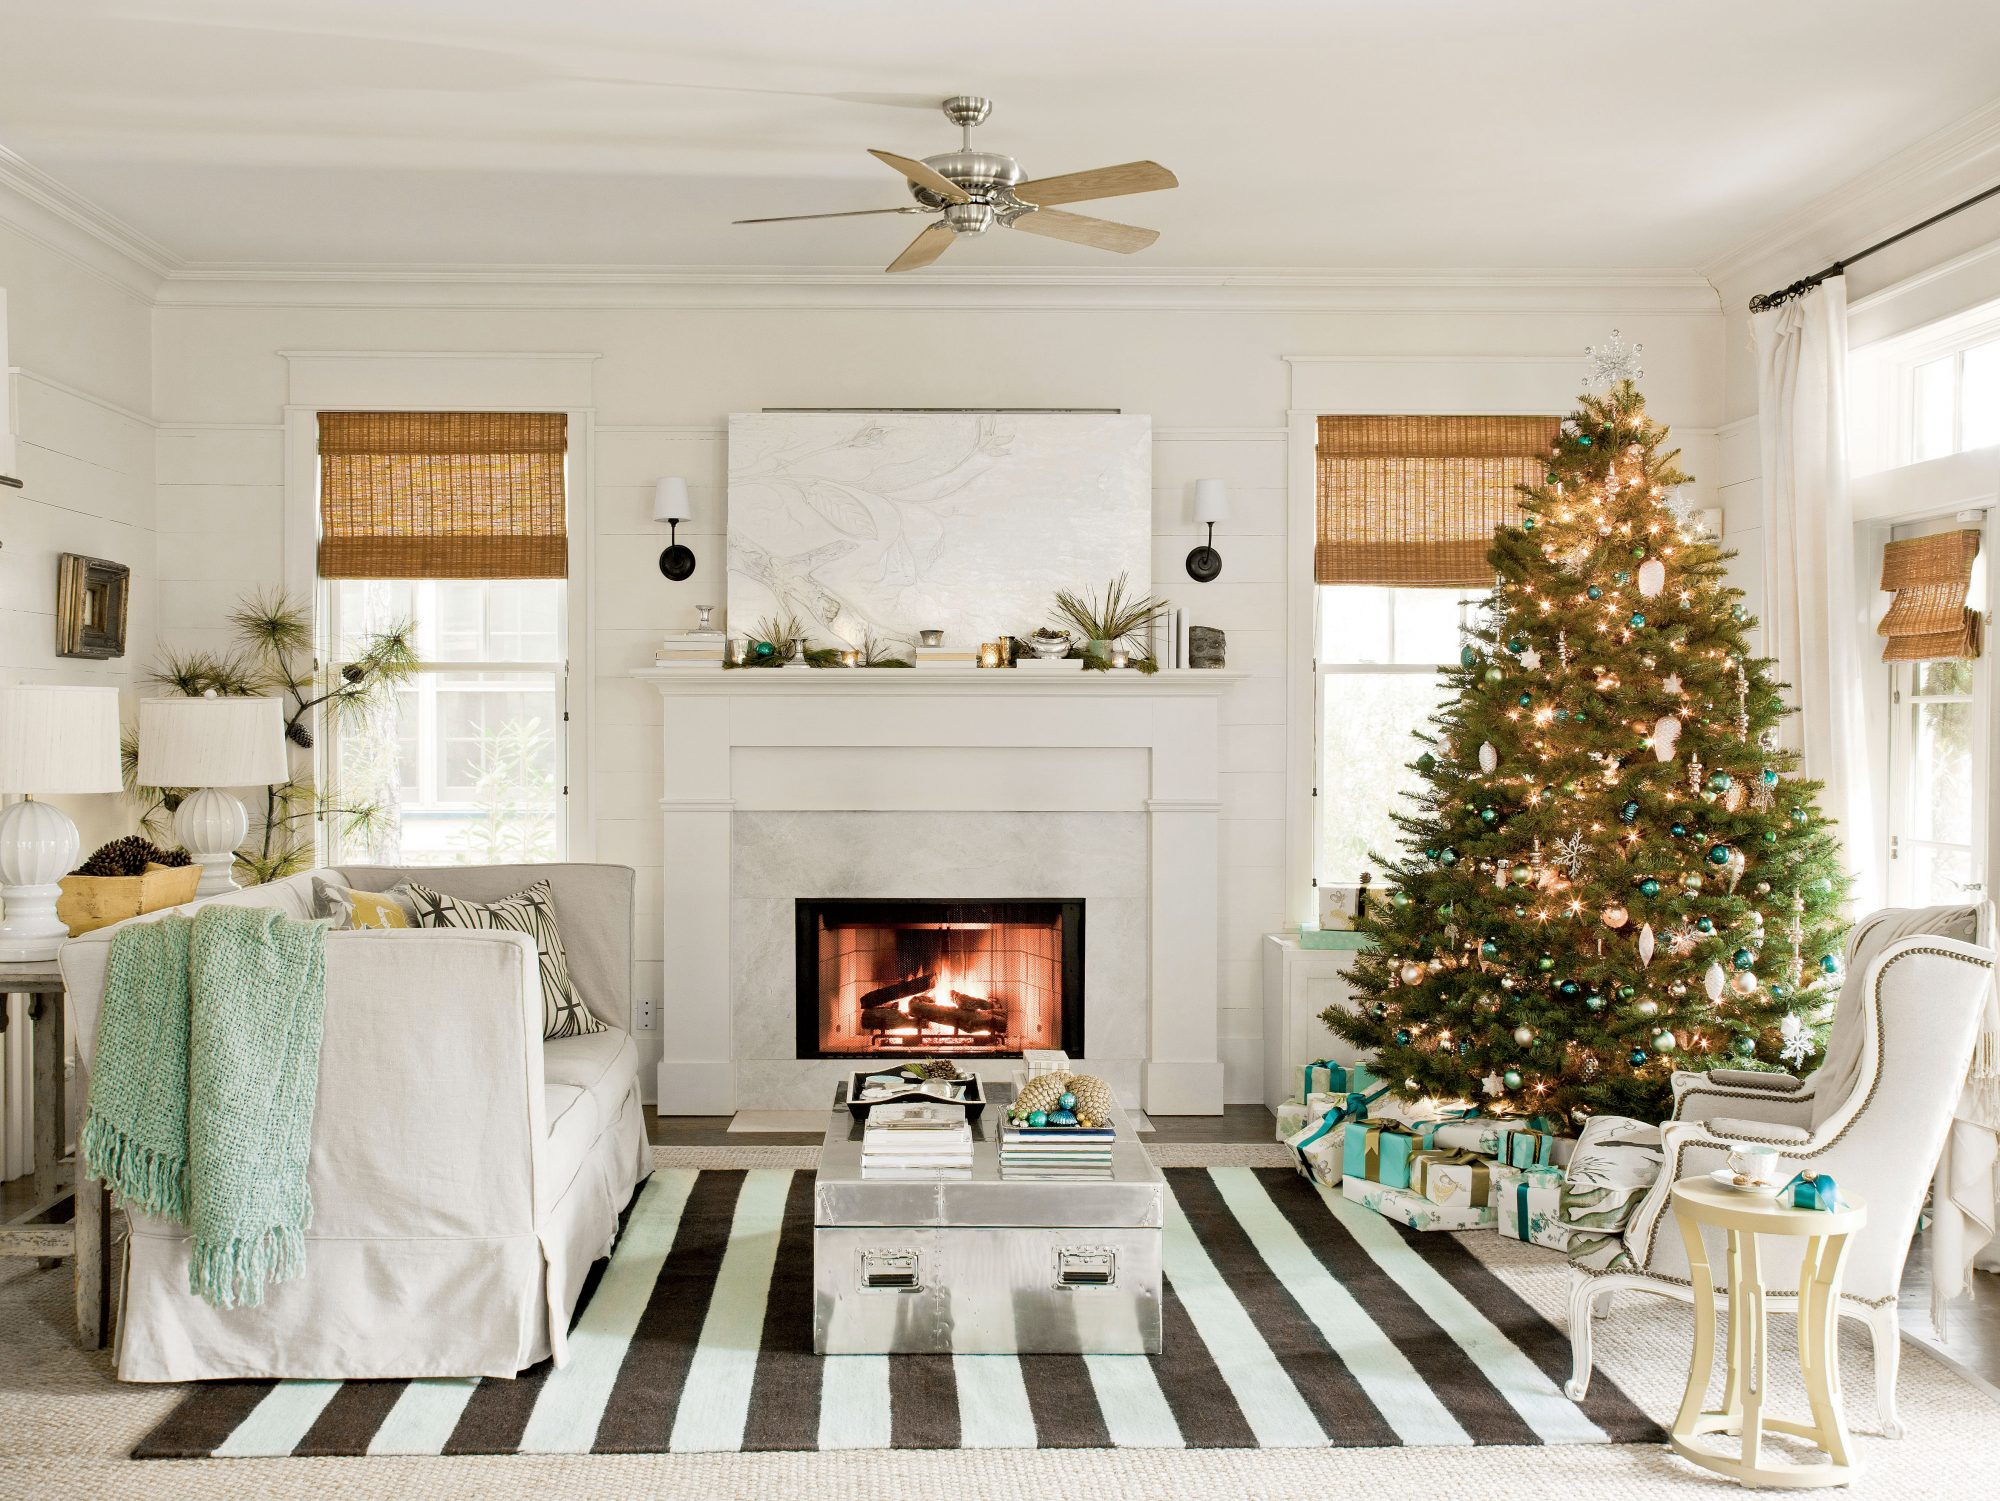 Festive Seaside Cottage